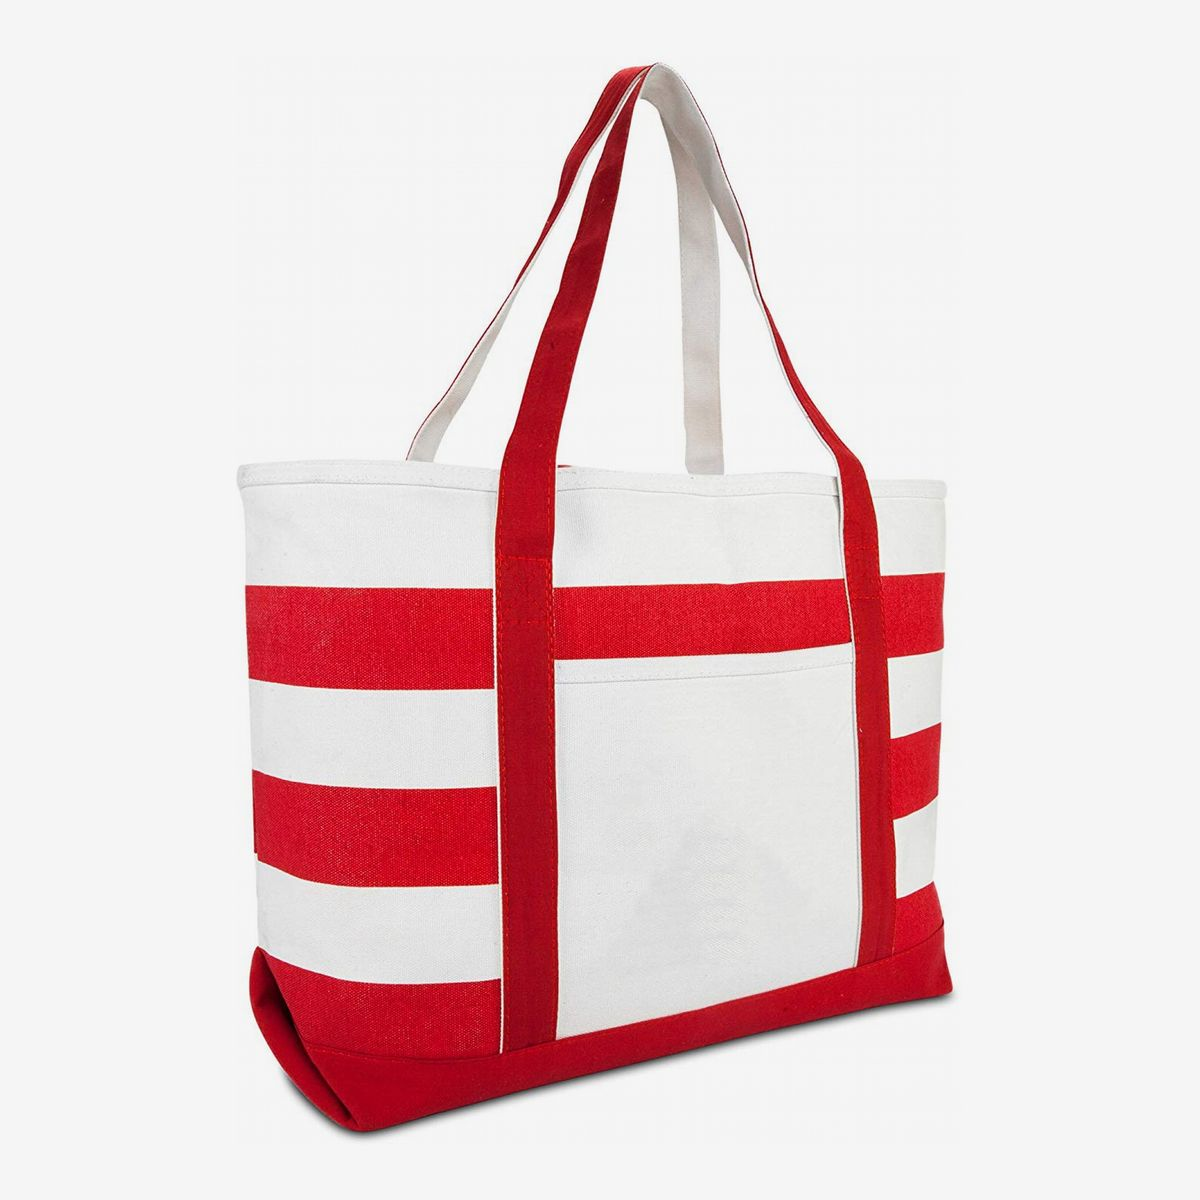 Stylish woman\u2019s all around tote bag 18 x 15 inches in red black and white with inside and outside pockets sturdy home dec fabric